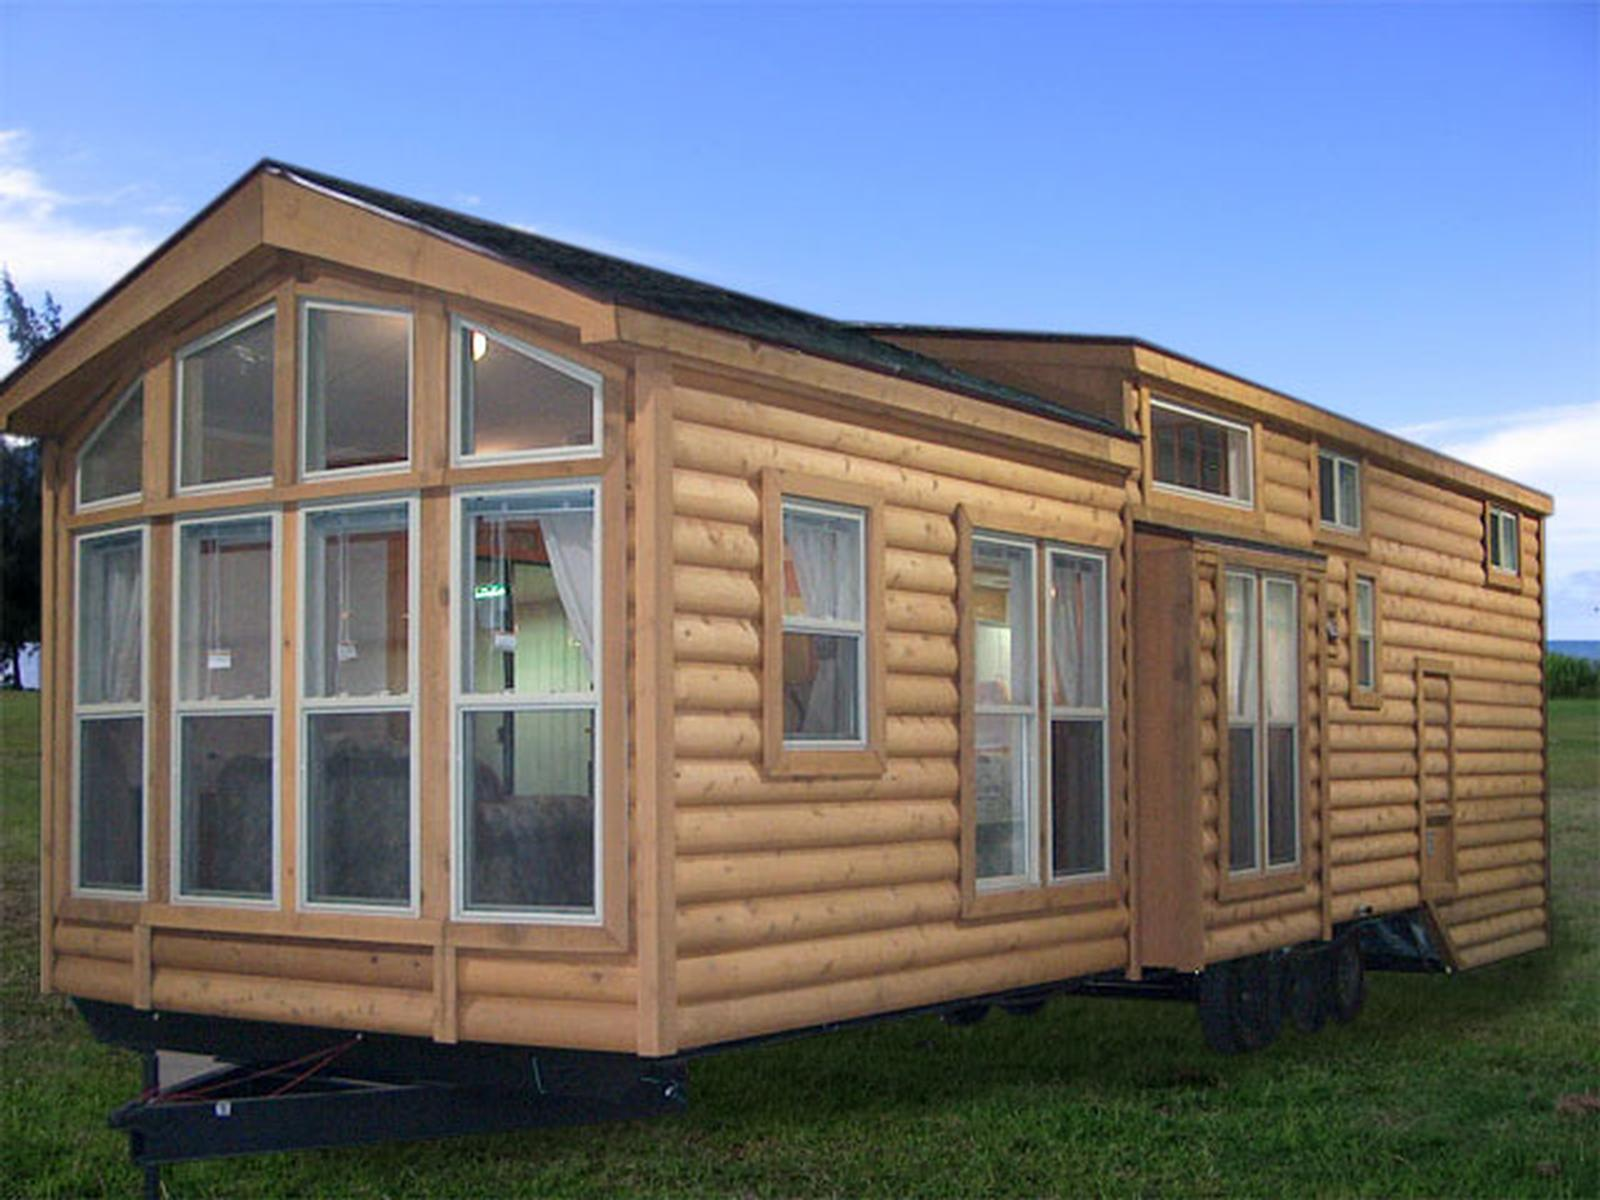 Heritage lodge cabin park models the finest quality for Different models of houses